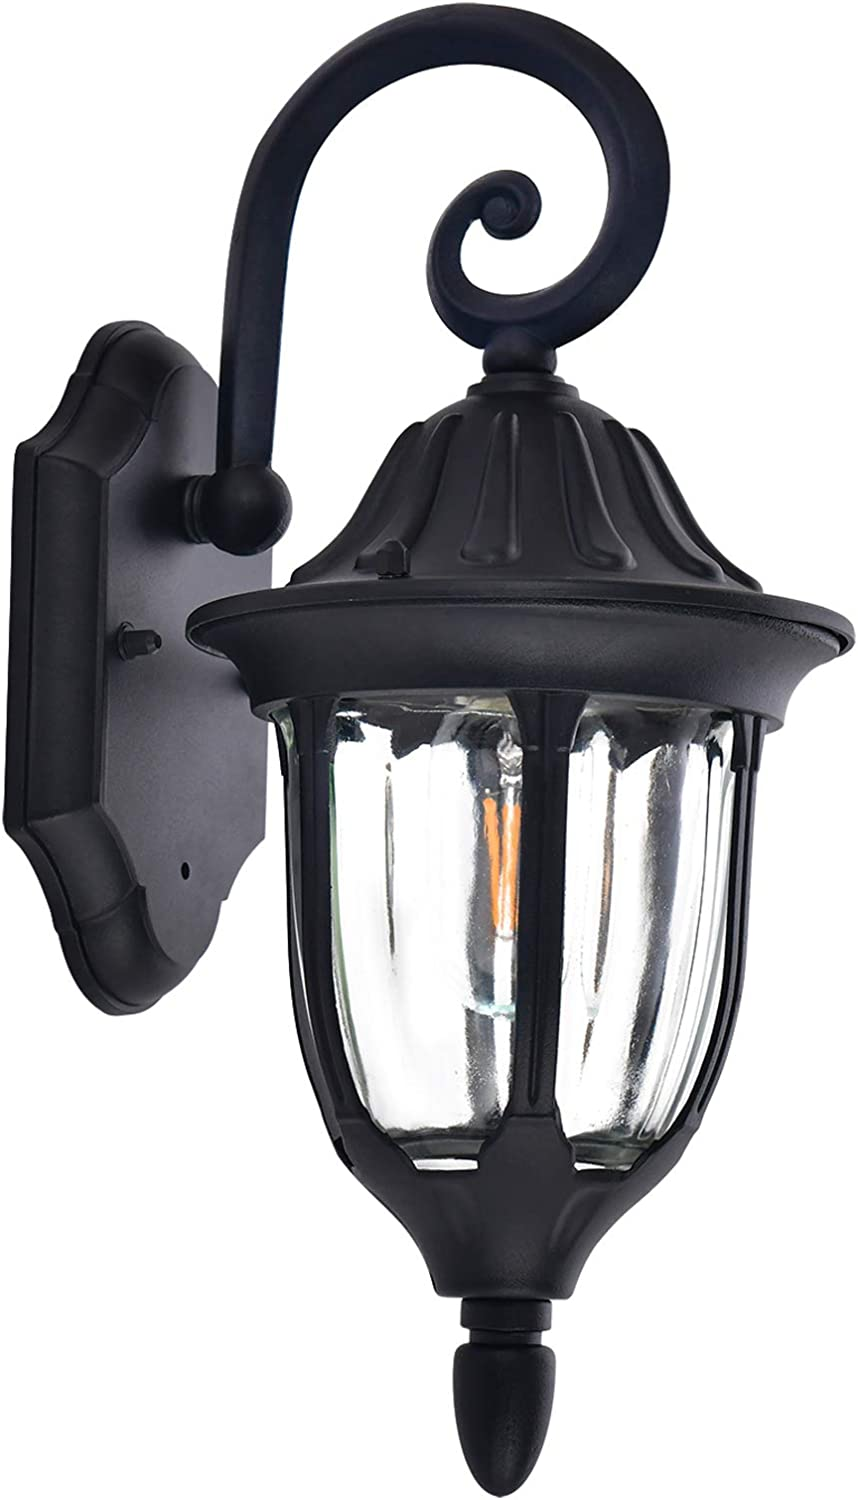 Outdoor Wall Lantern Waterproof Anti-Rust Sconce Porch Light Retro Lighting Fixture Exterior Porch Bulb Not Included Garage Vintage Wall Mount Light for Doorway